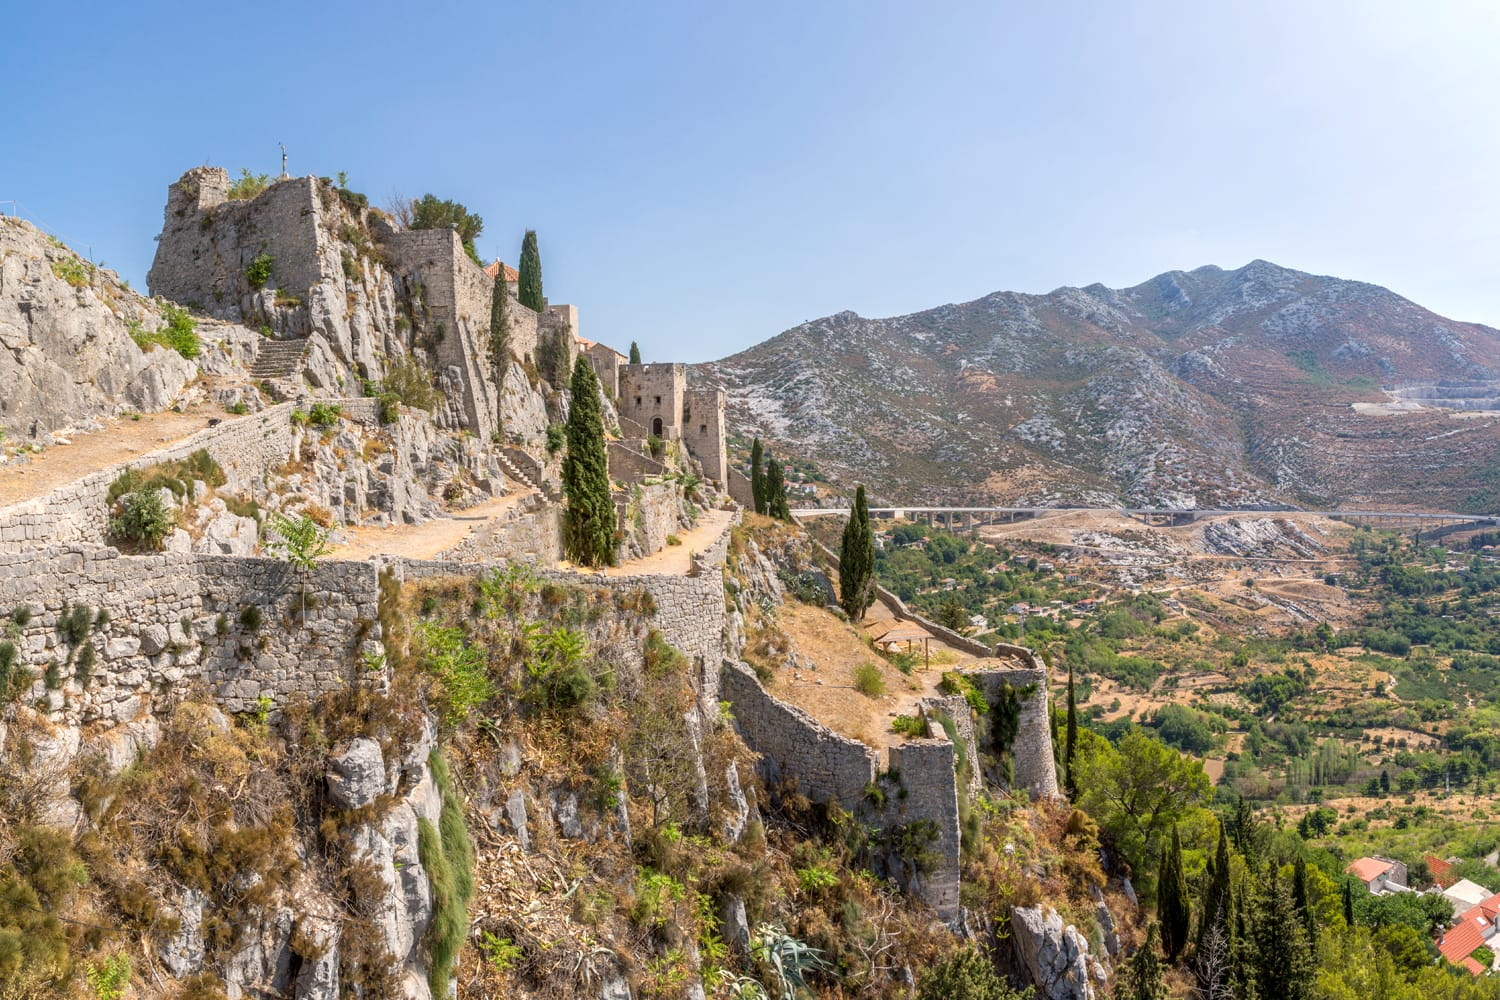 Ruins of the medieval fortress of Klis, Croatia